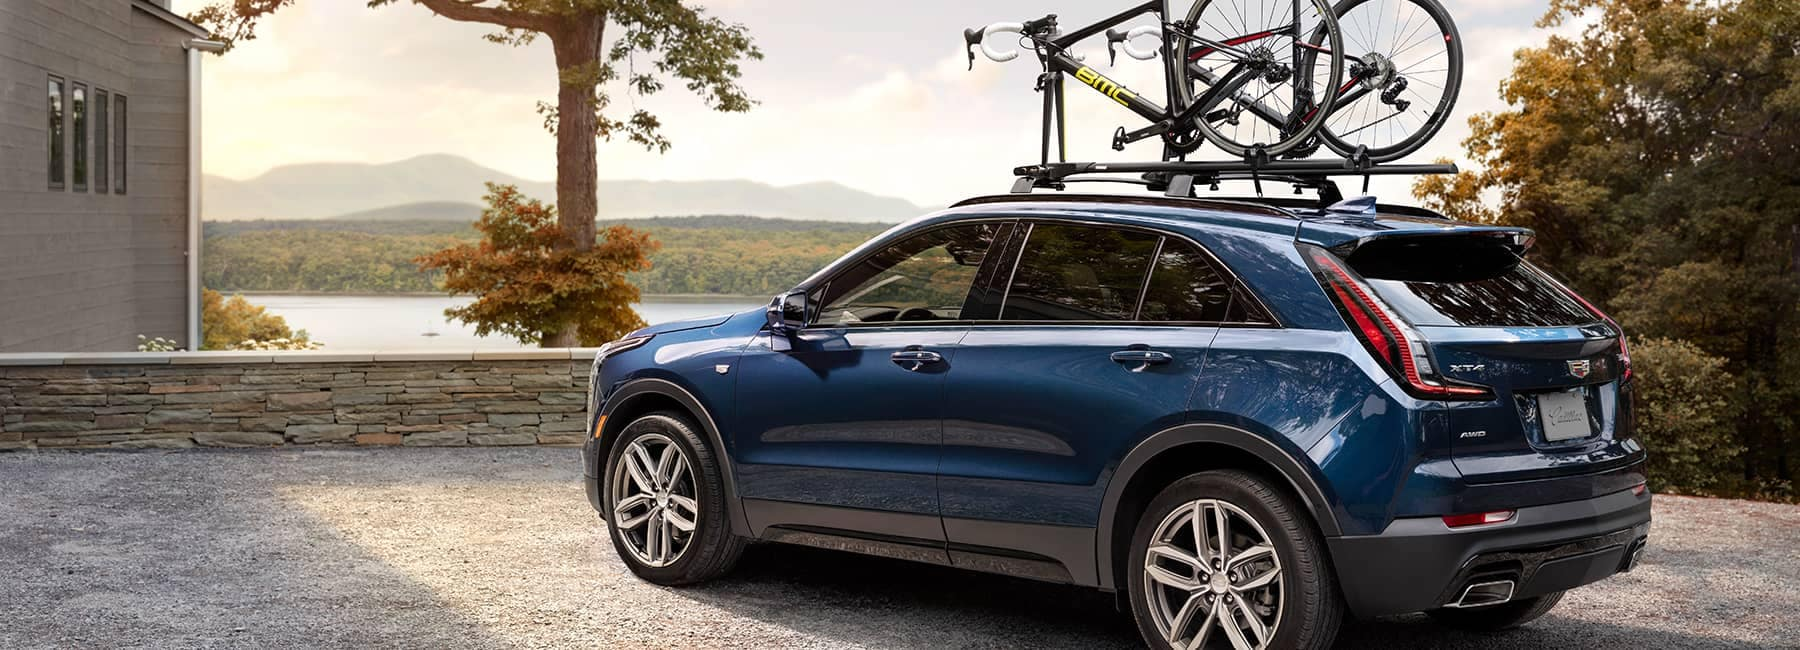 Bleu Cadillac Crossover with a bike on top